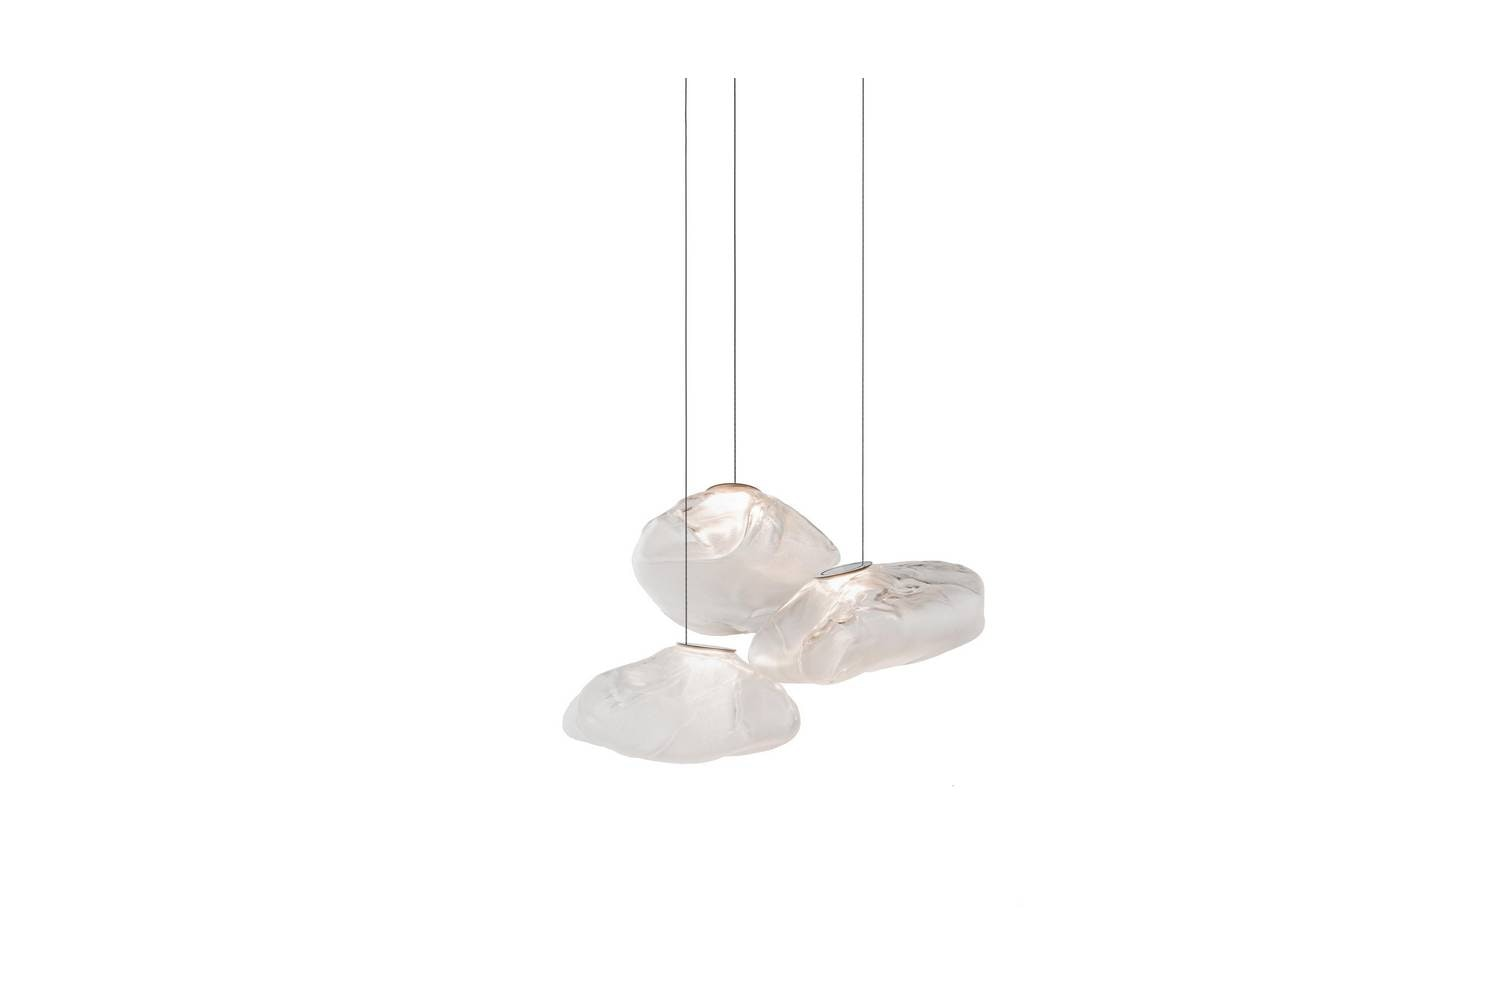 73.3 Suspension Lamp by Omer Arbel for Bocci